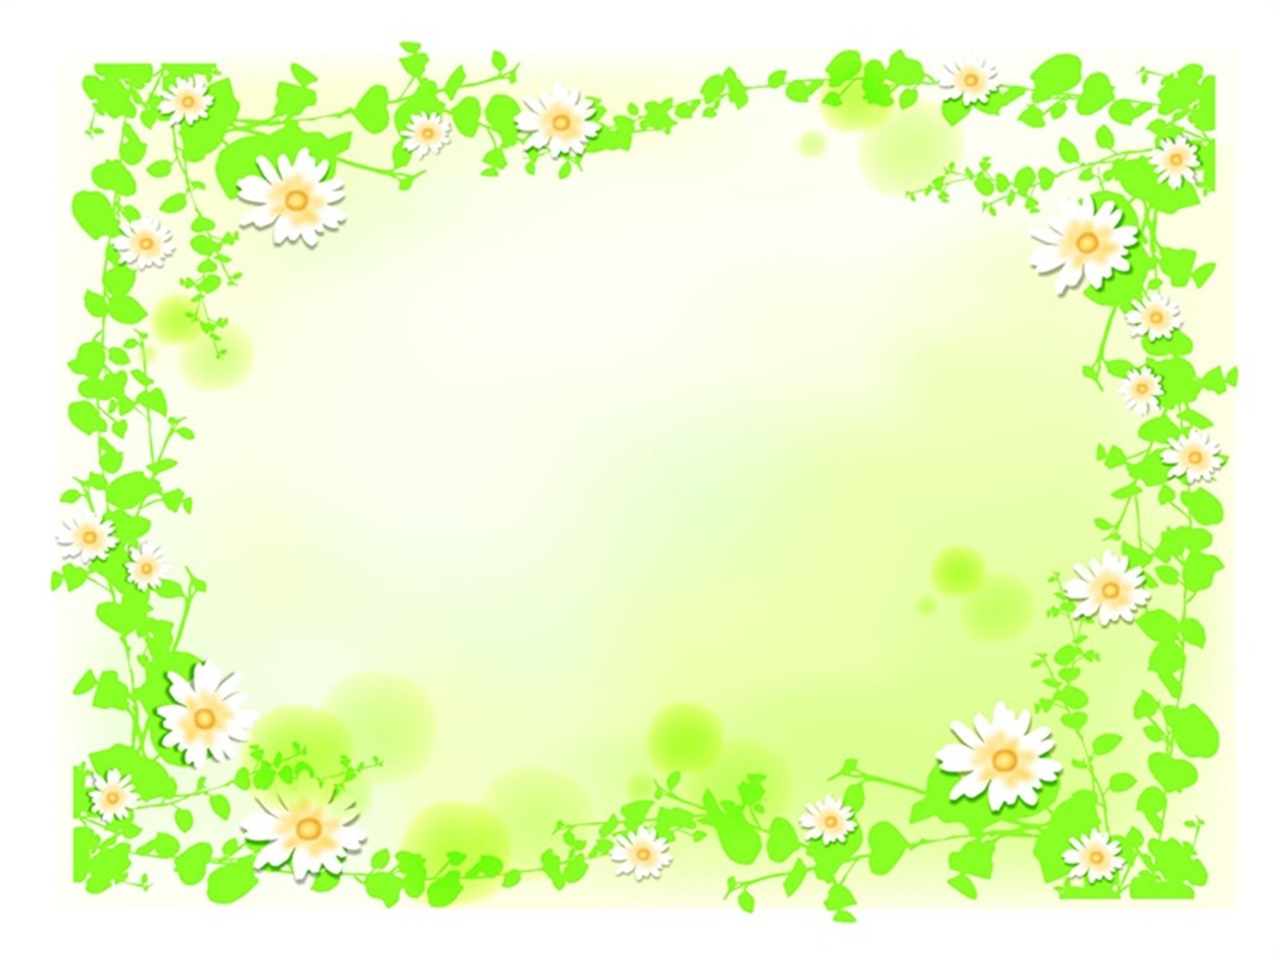 green leaf and flower border PPT background